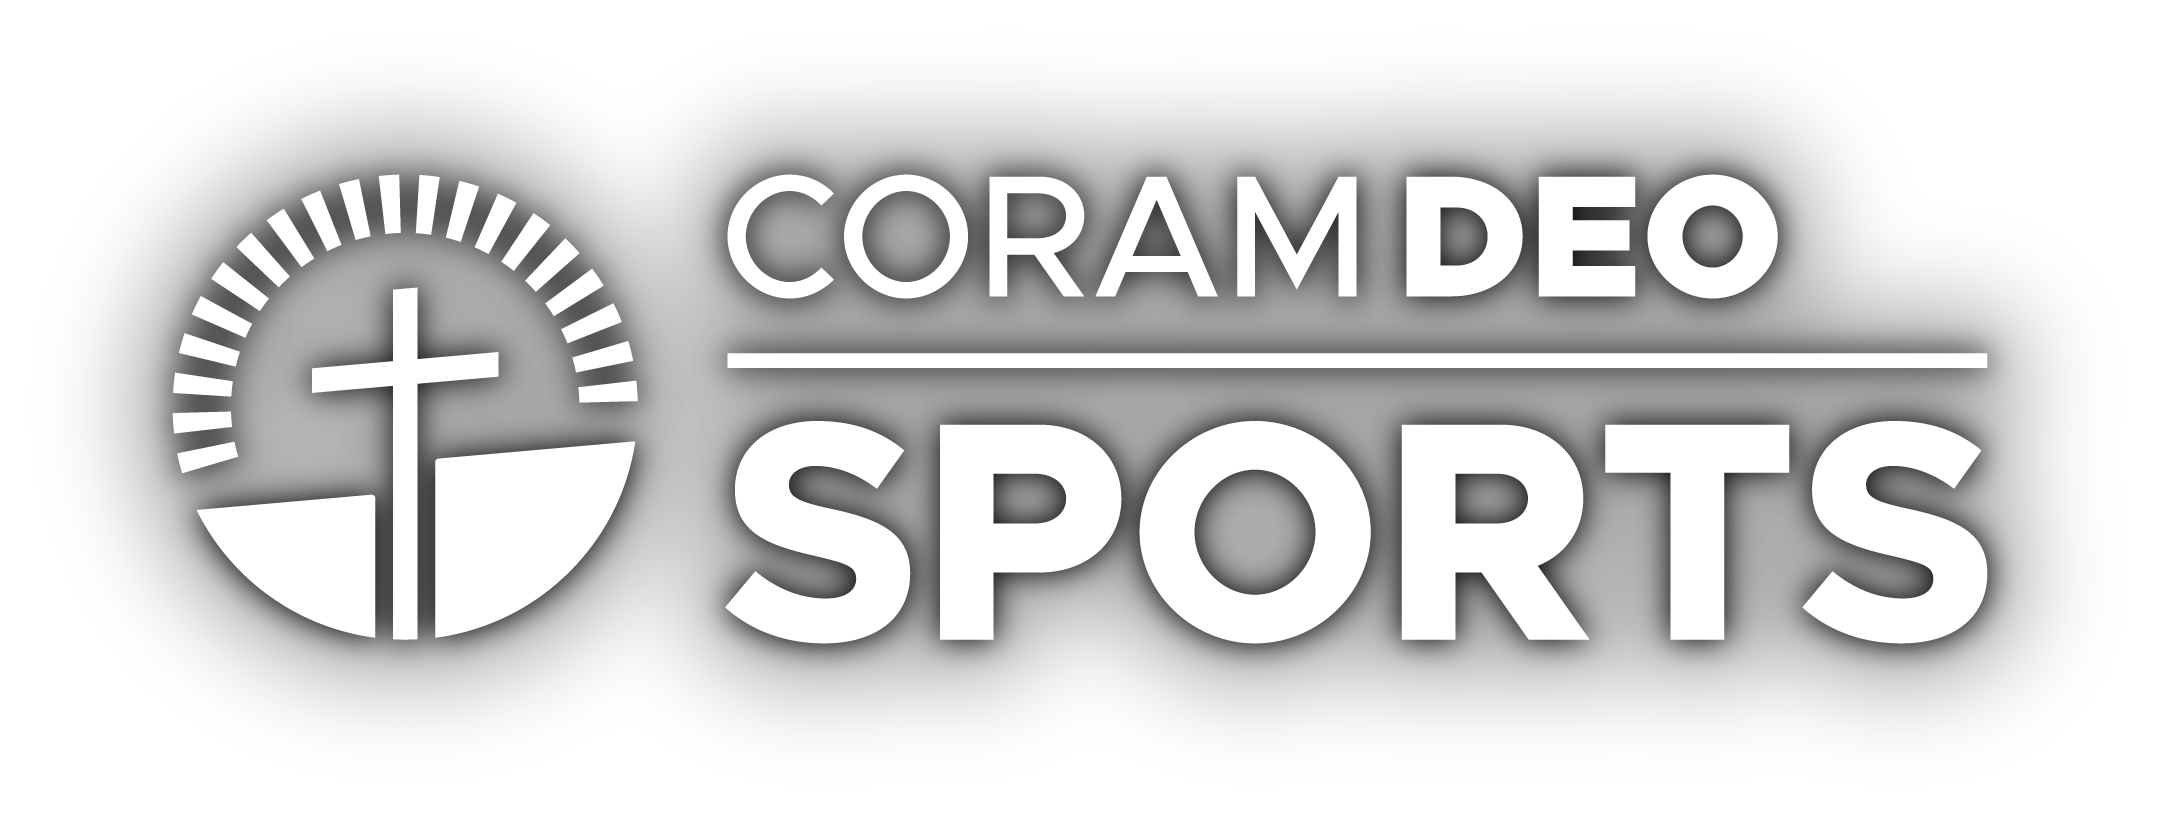 Coram Deo Sports